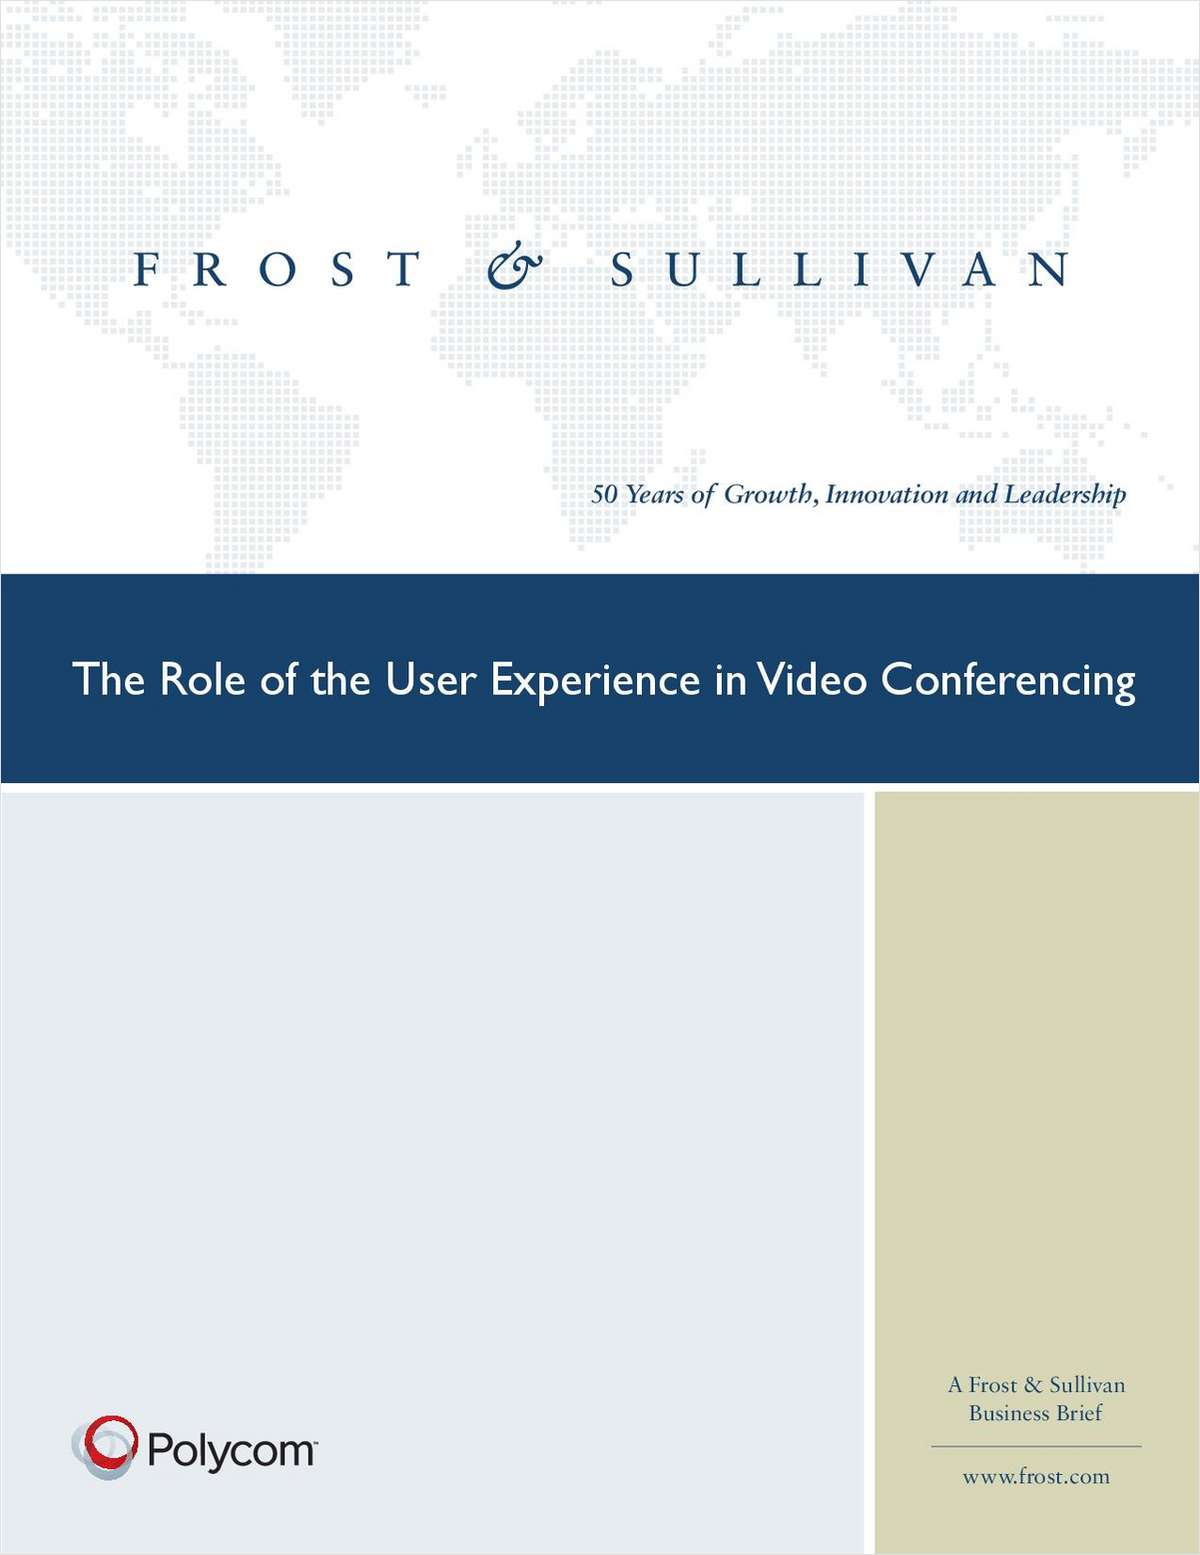 The Role of the User Experience in Video Conferencing